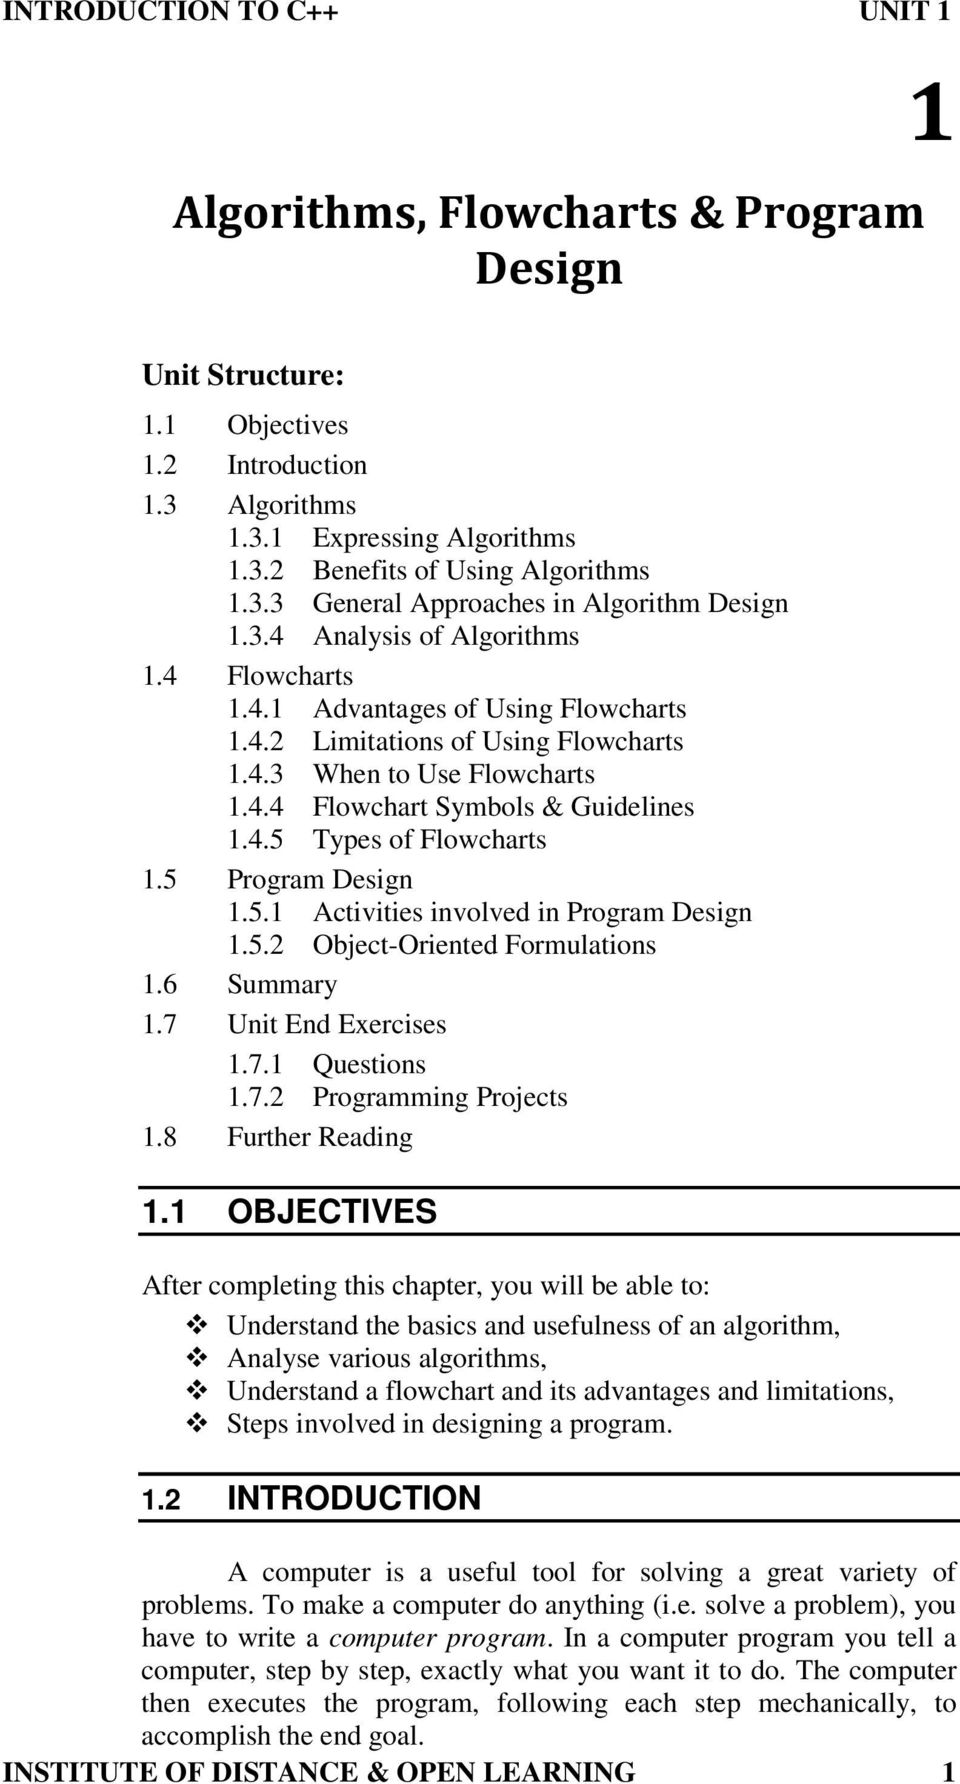 Algorithms, Flowcharts & Program Design - PDF